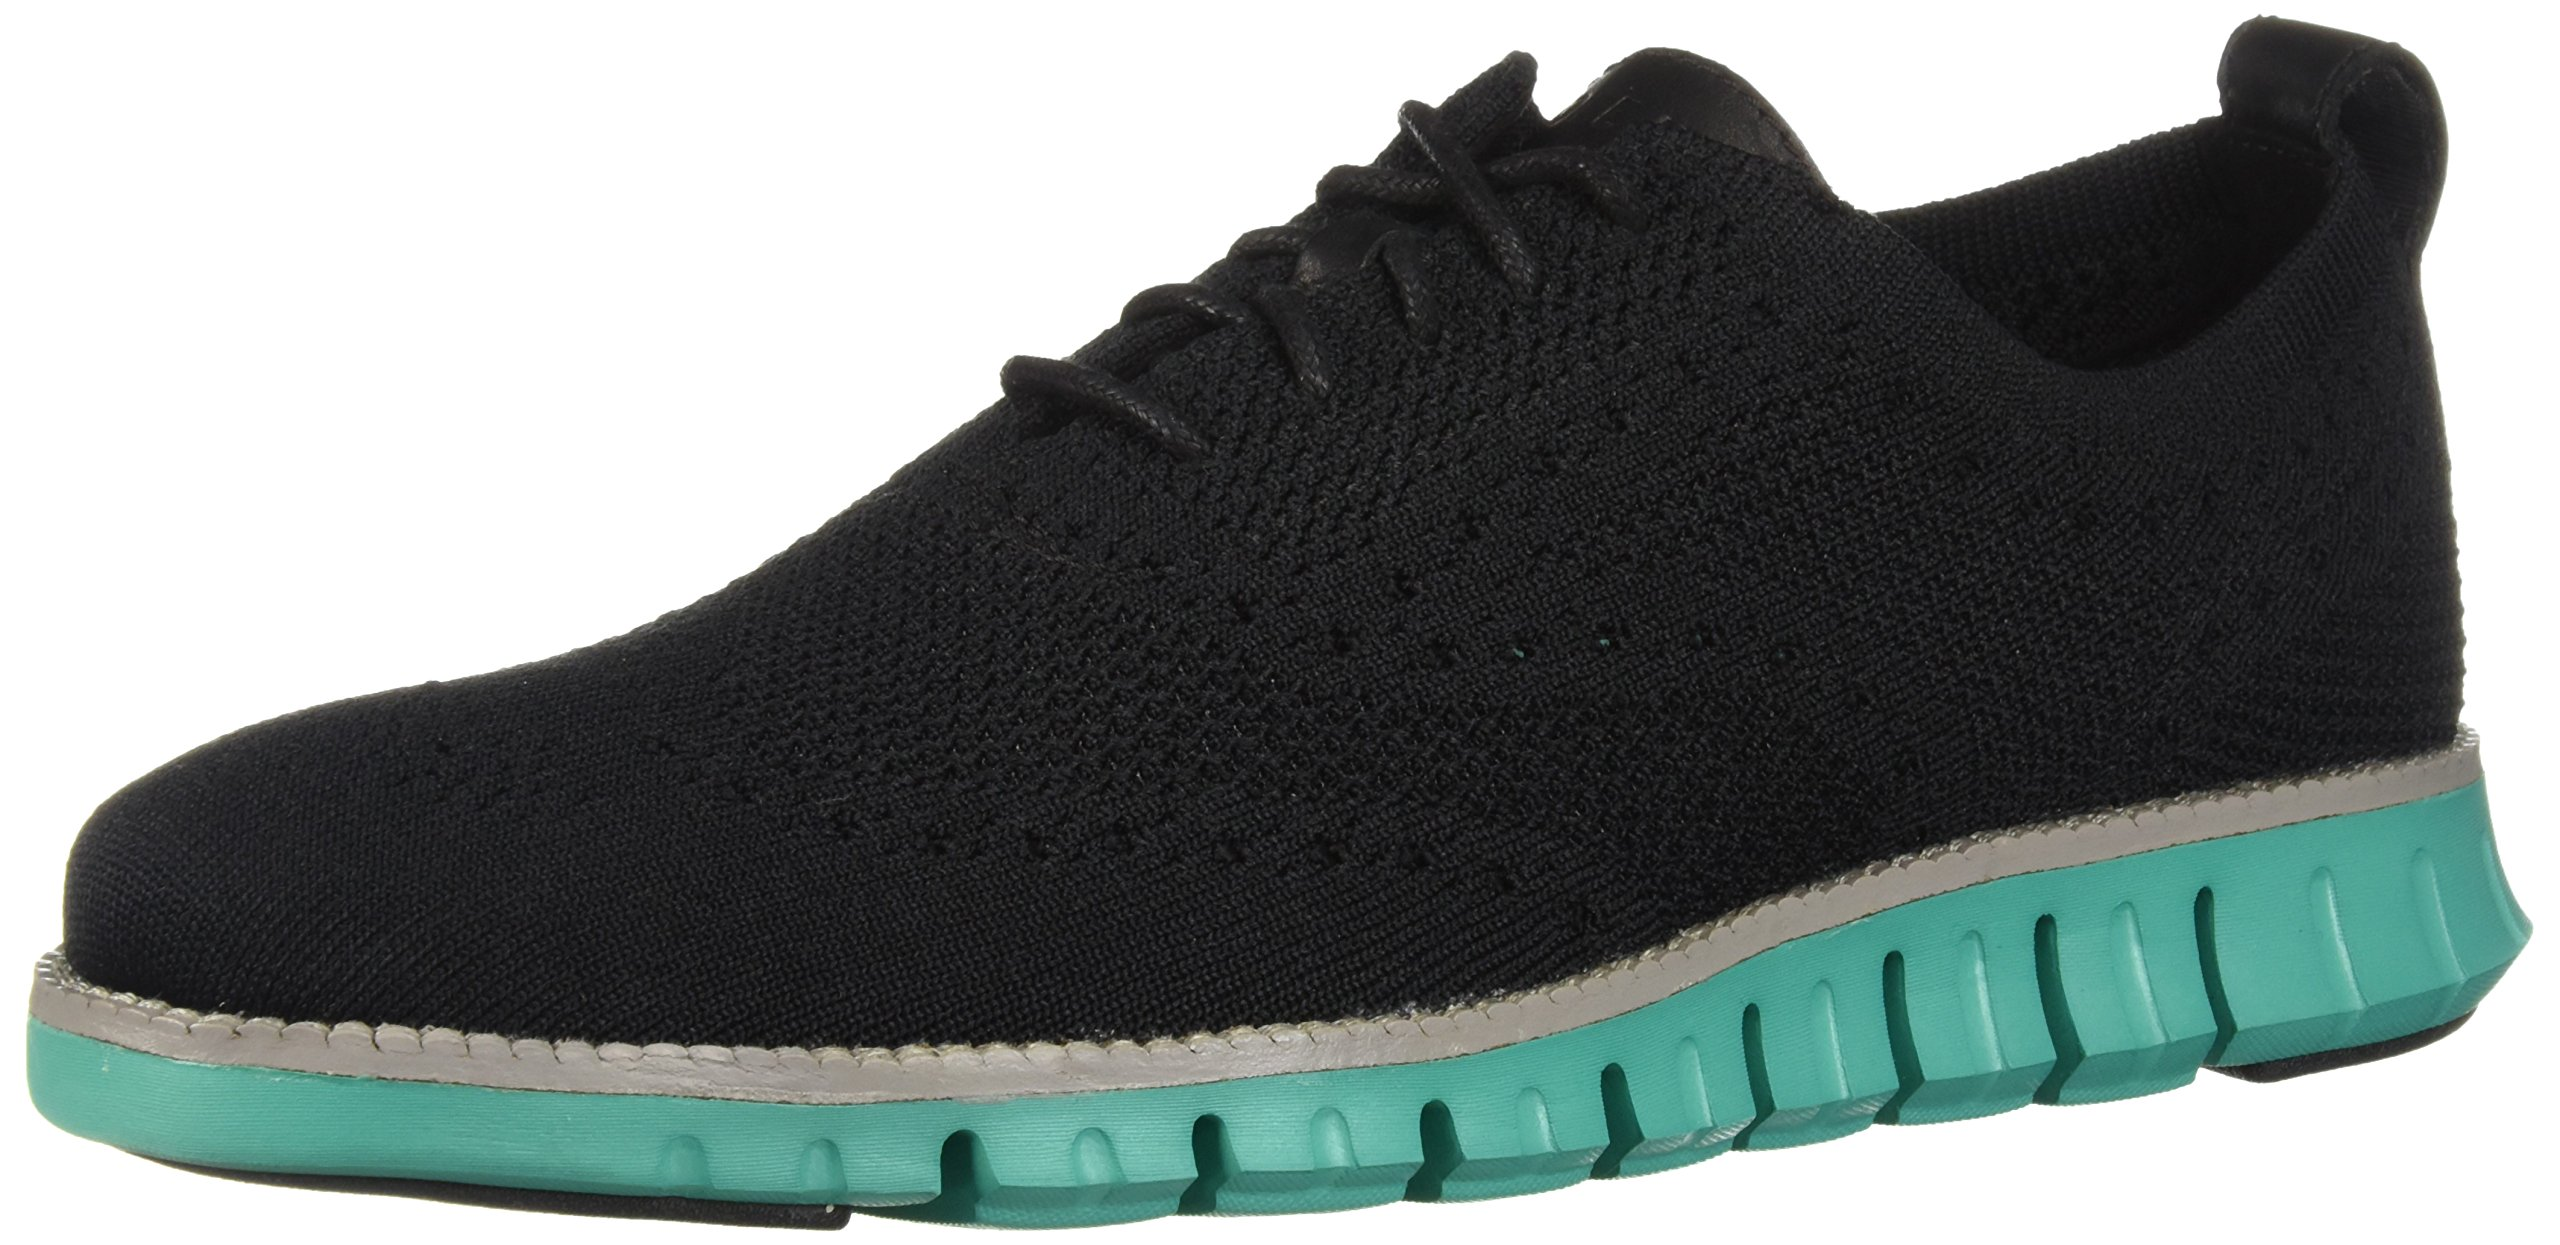 Cole Haan Men's Zerogrand Stitchlite Oxford, Black/Pool Green, 9.5 Medium US